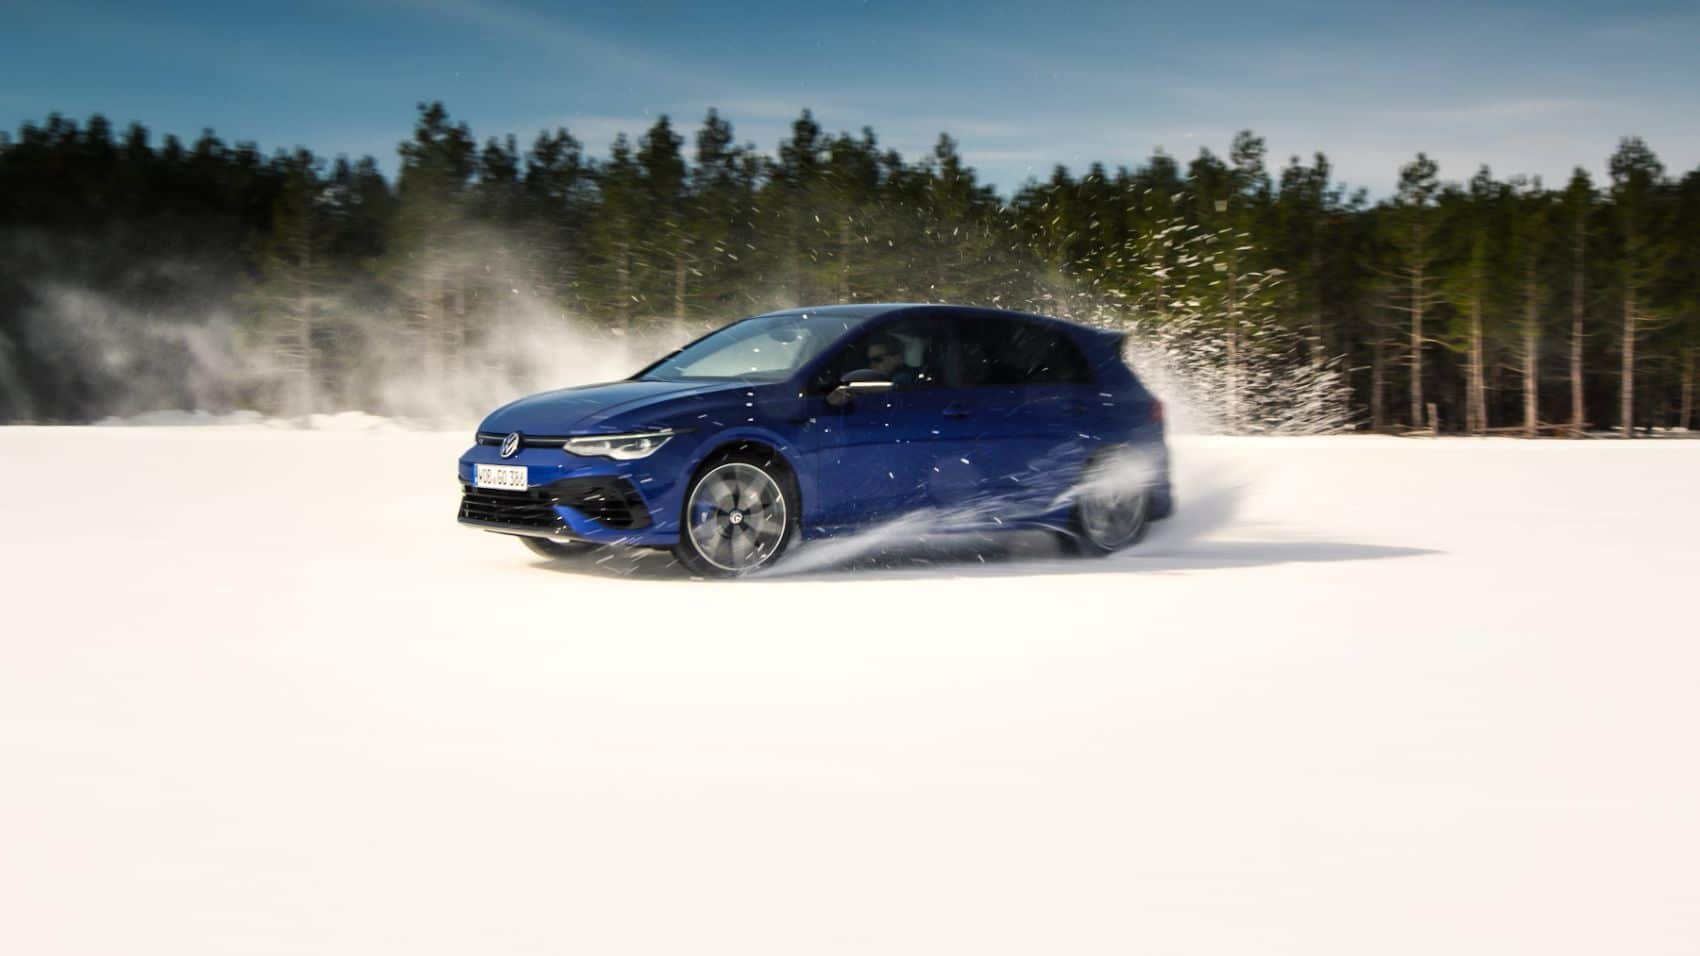 Spring Thaw Joyride With The 2022 Golf R & 2021 ID.4